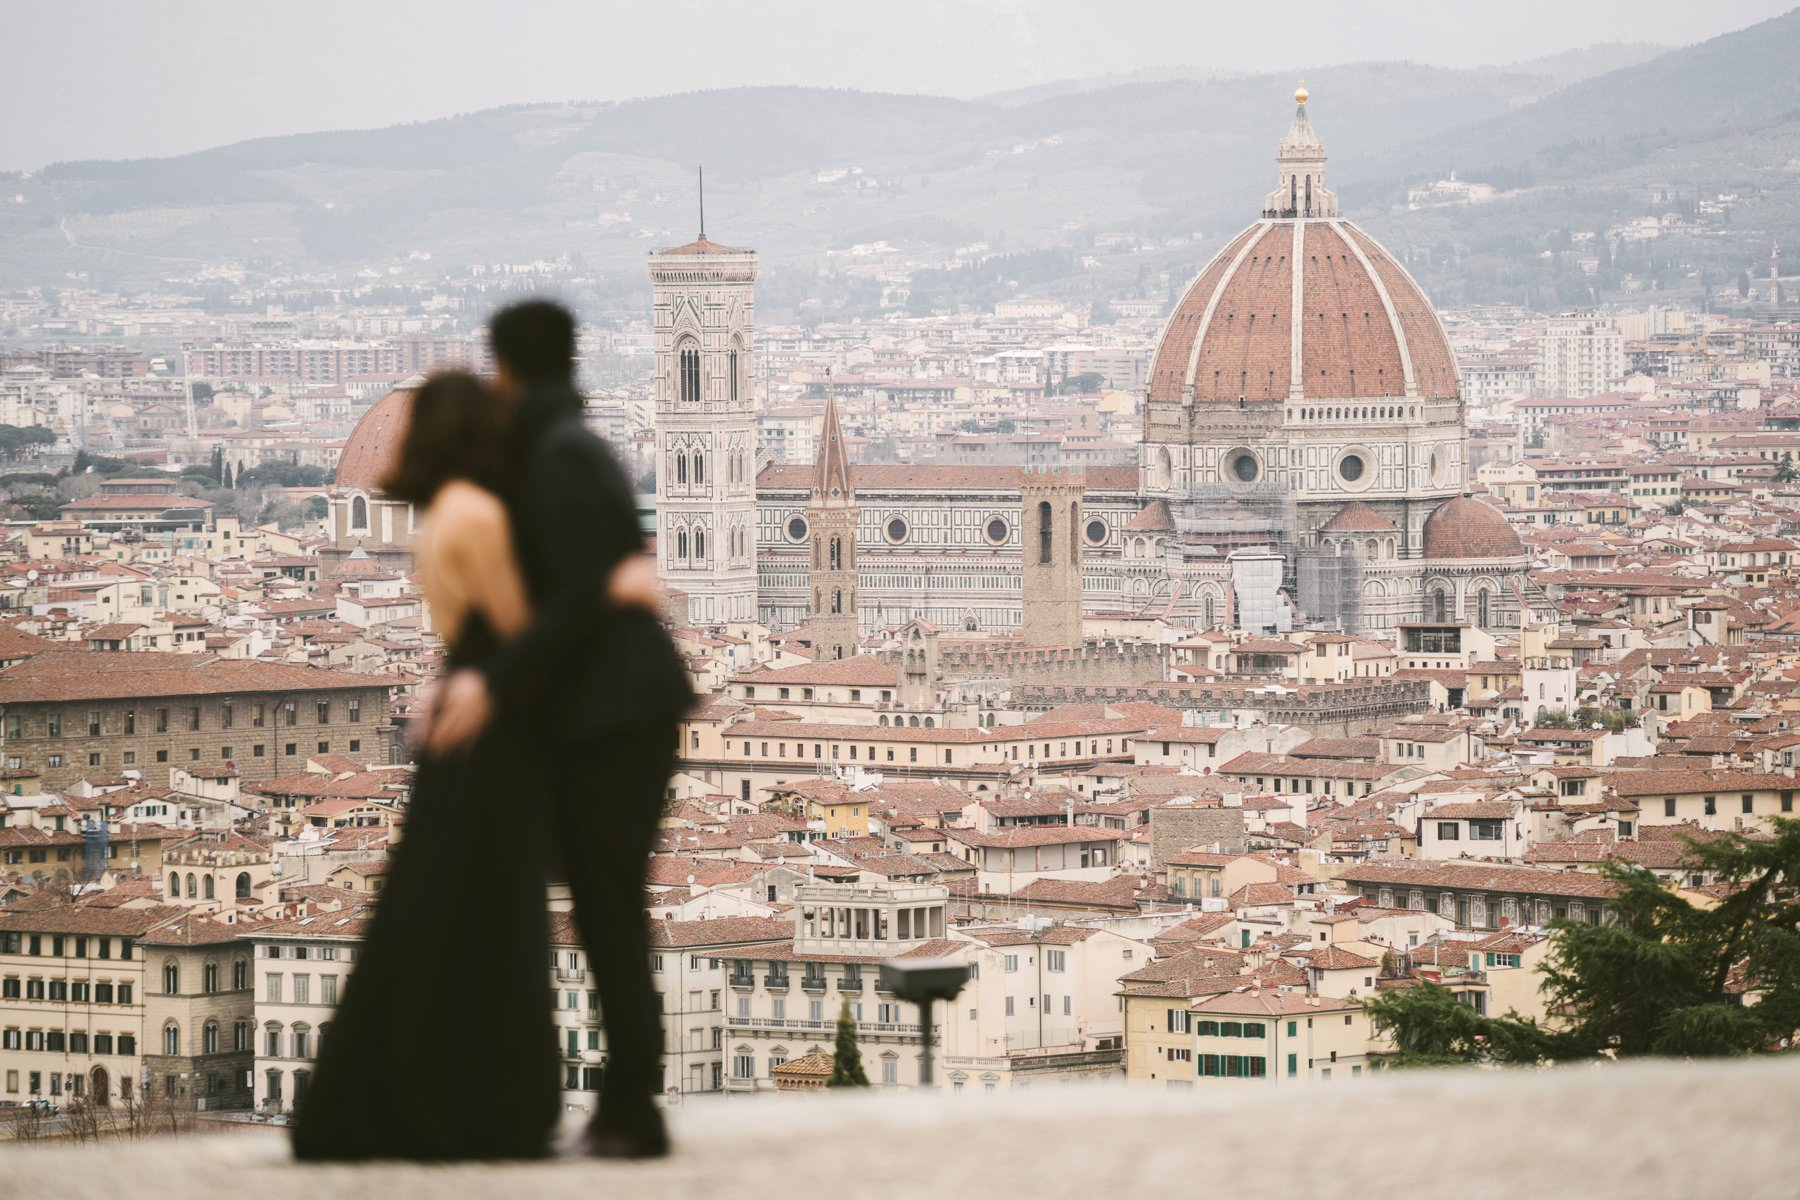 Florence couple portrait photo shoot at San Miniato al Monte near Piazzale Michelangelo where the view of the city in absolutely gorgeous and perfect to celebrate te love. Photo by the Italian creative and modern pre wedding photographer in Tuscany based Florence Gabriele Fani.